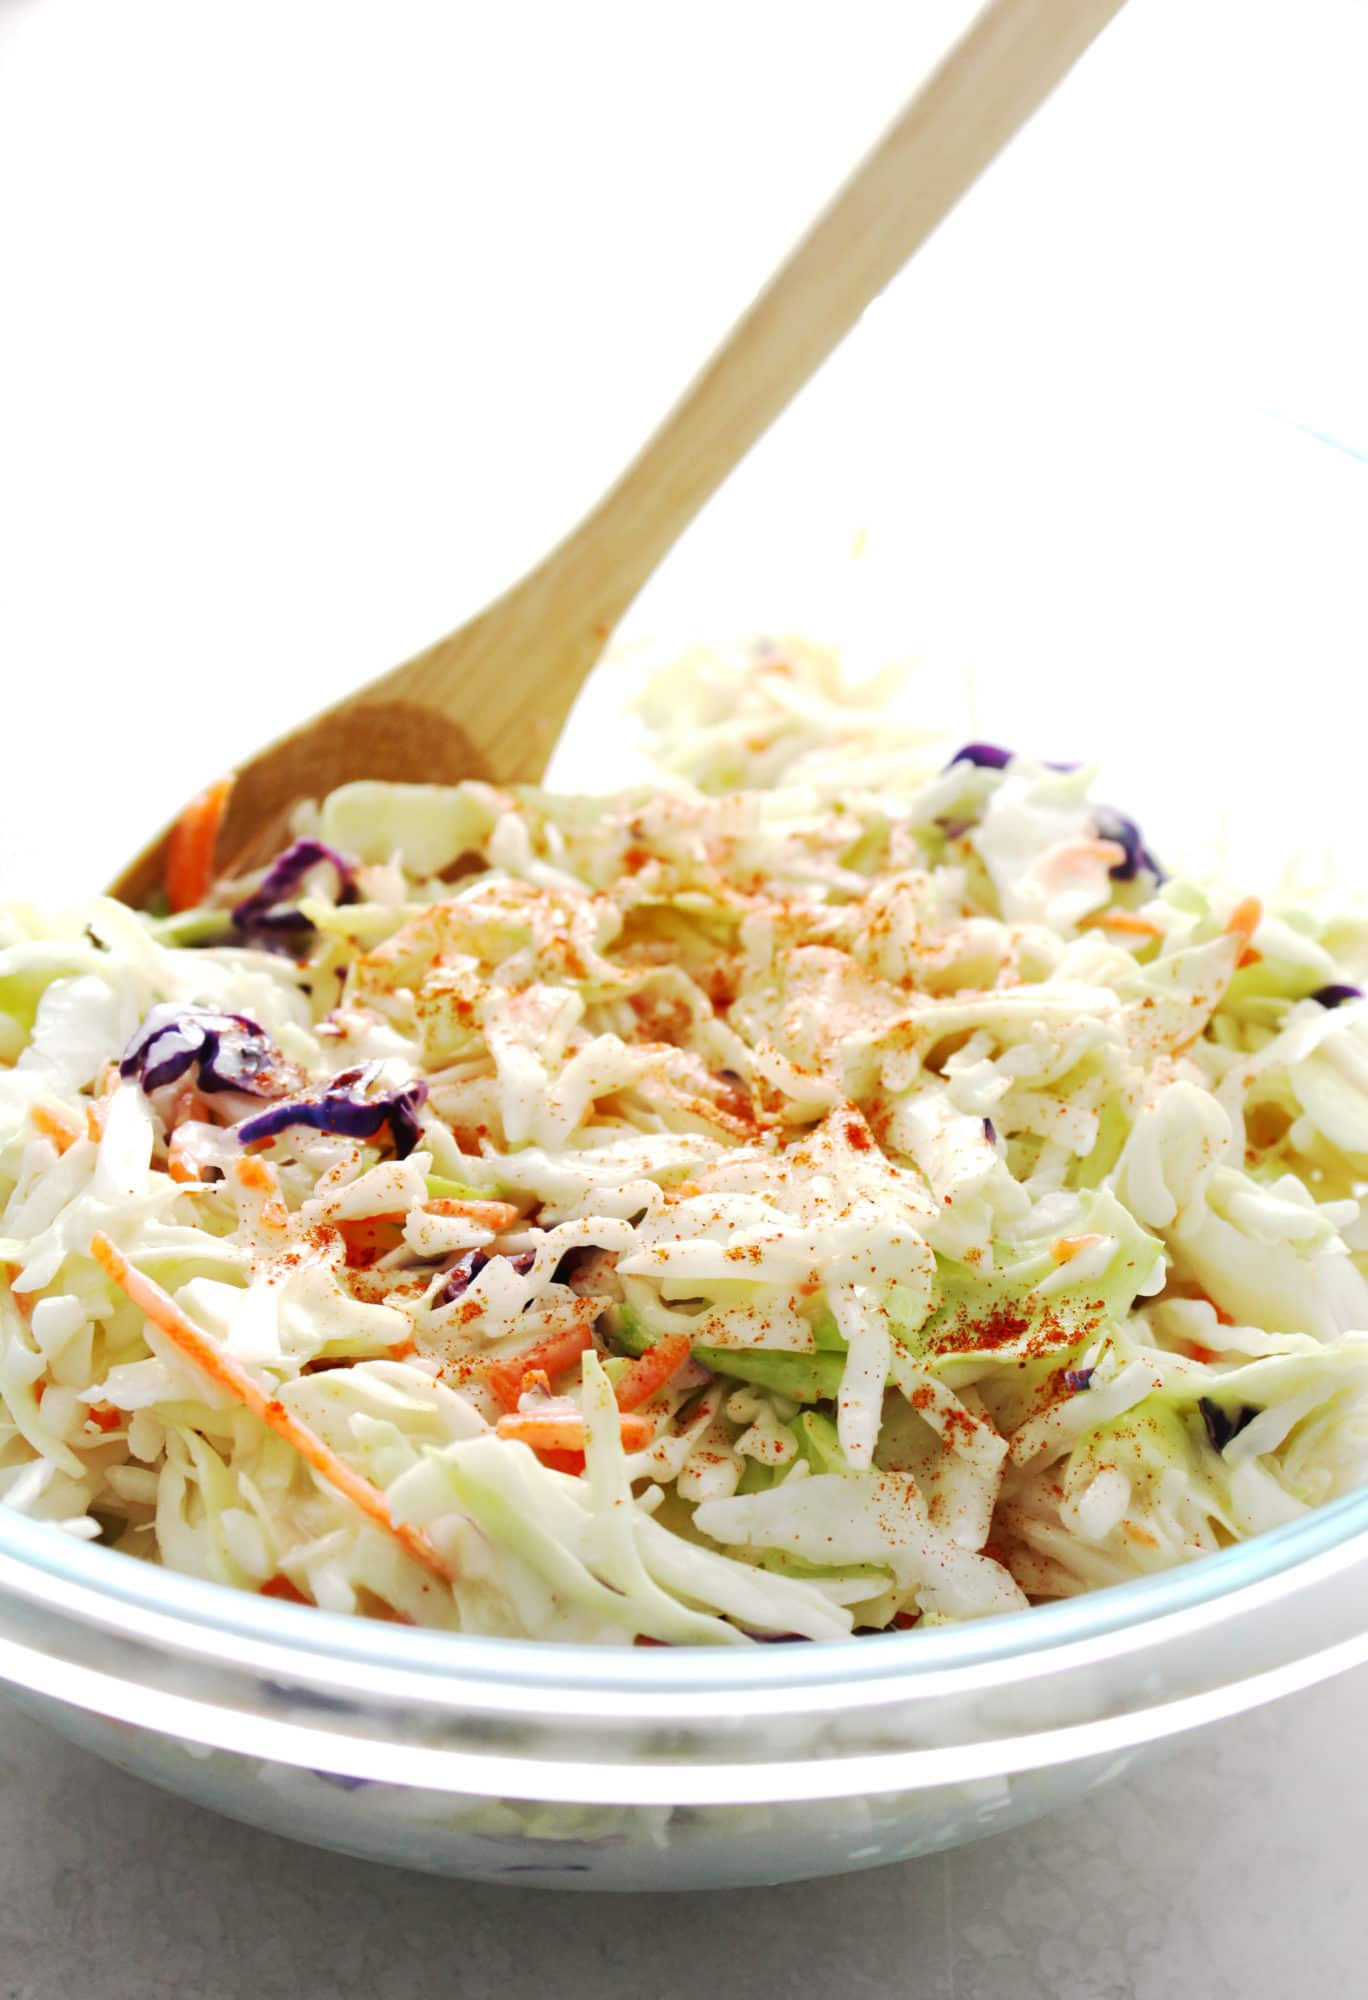 coleslaw in a clear glass bowl